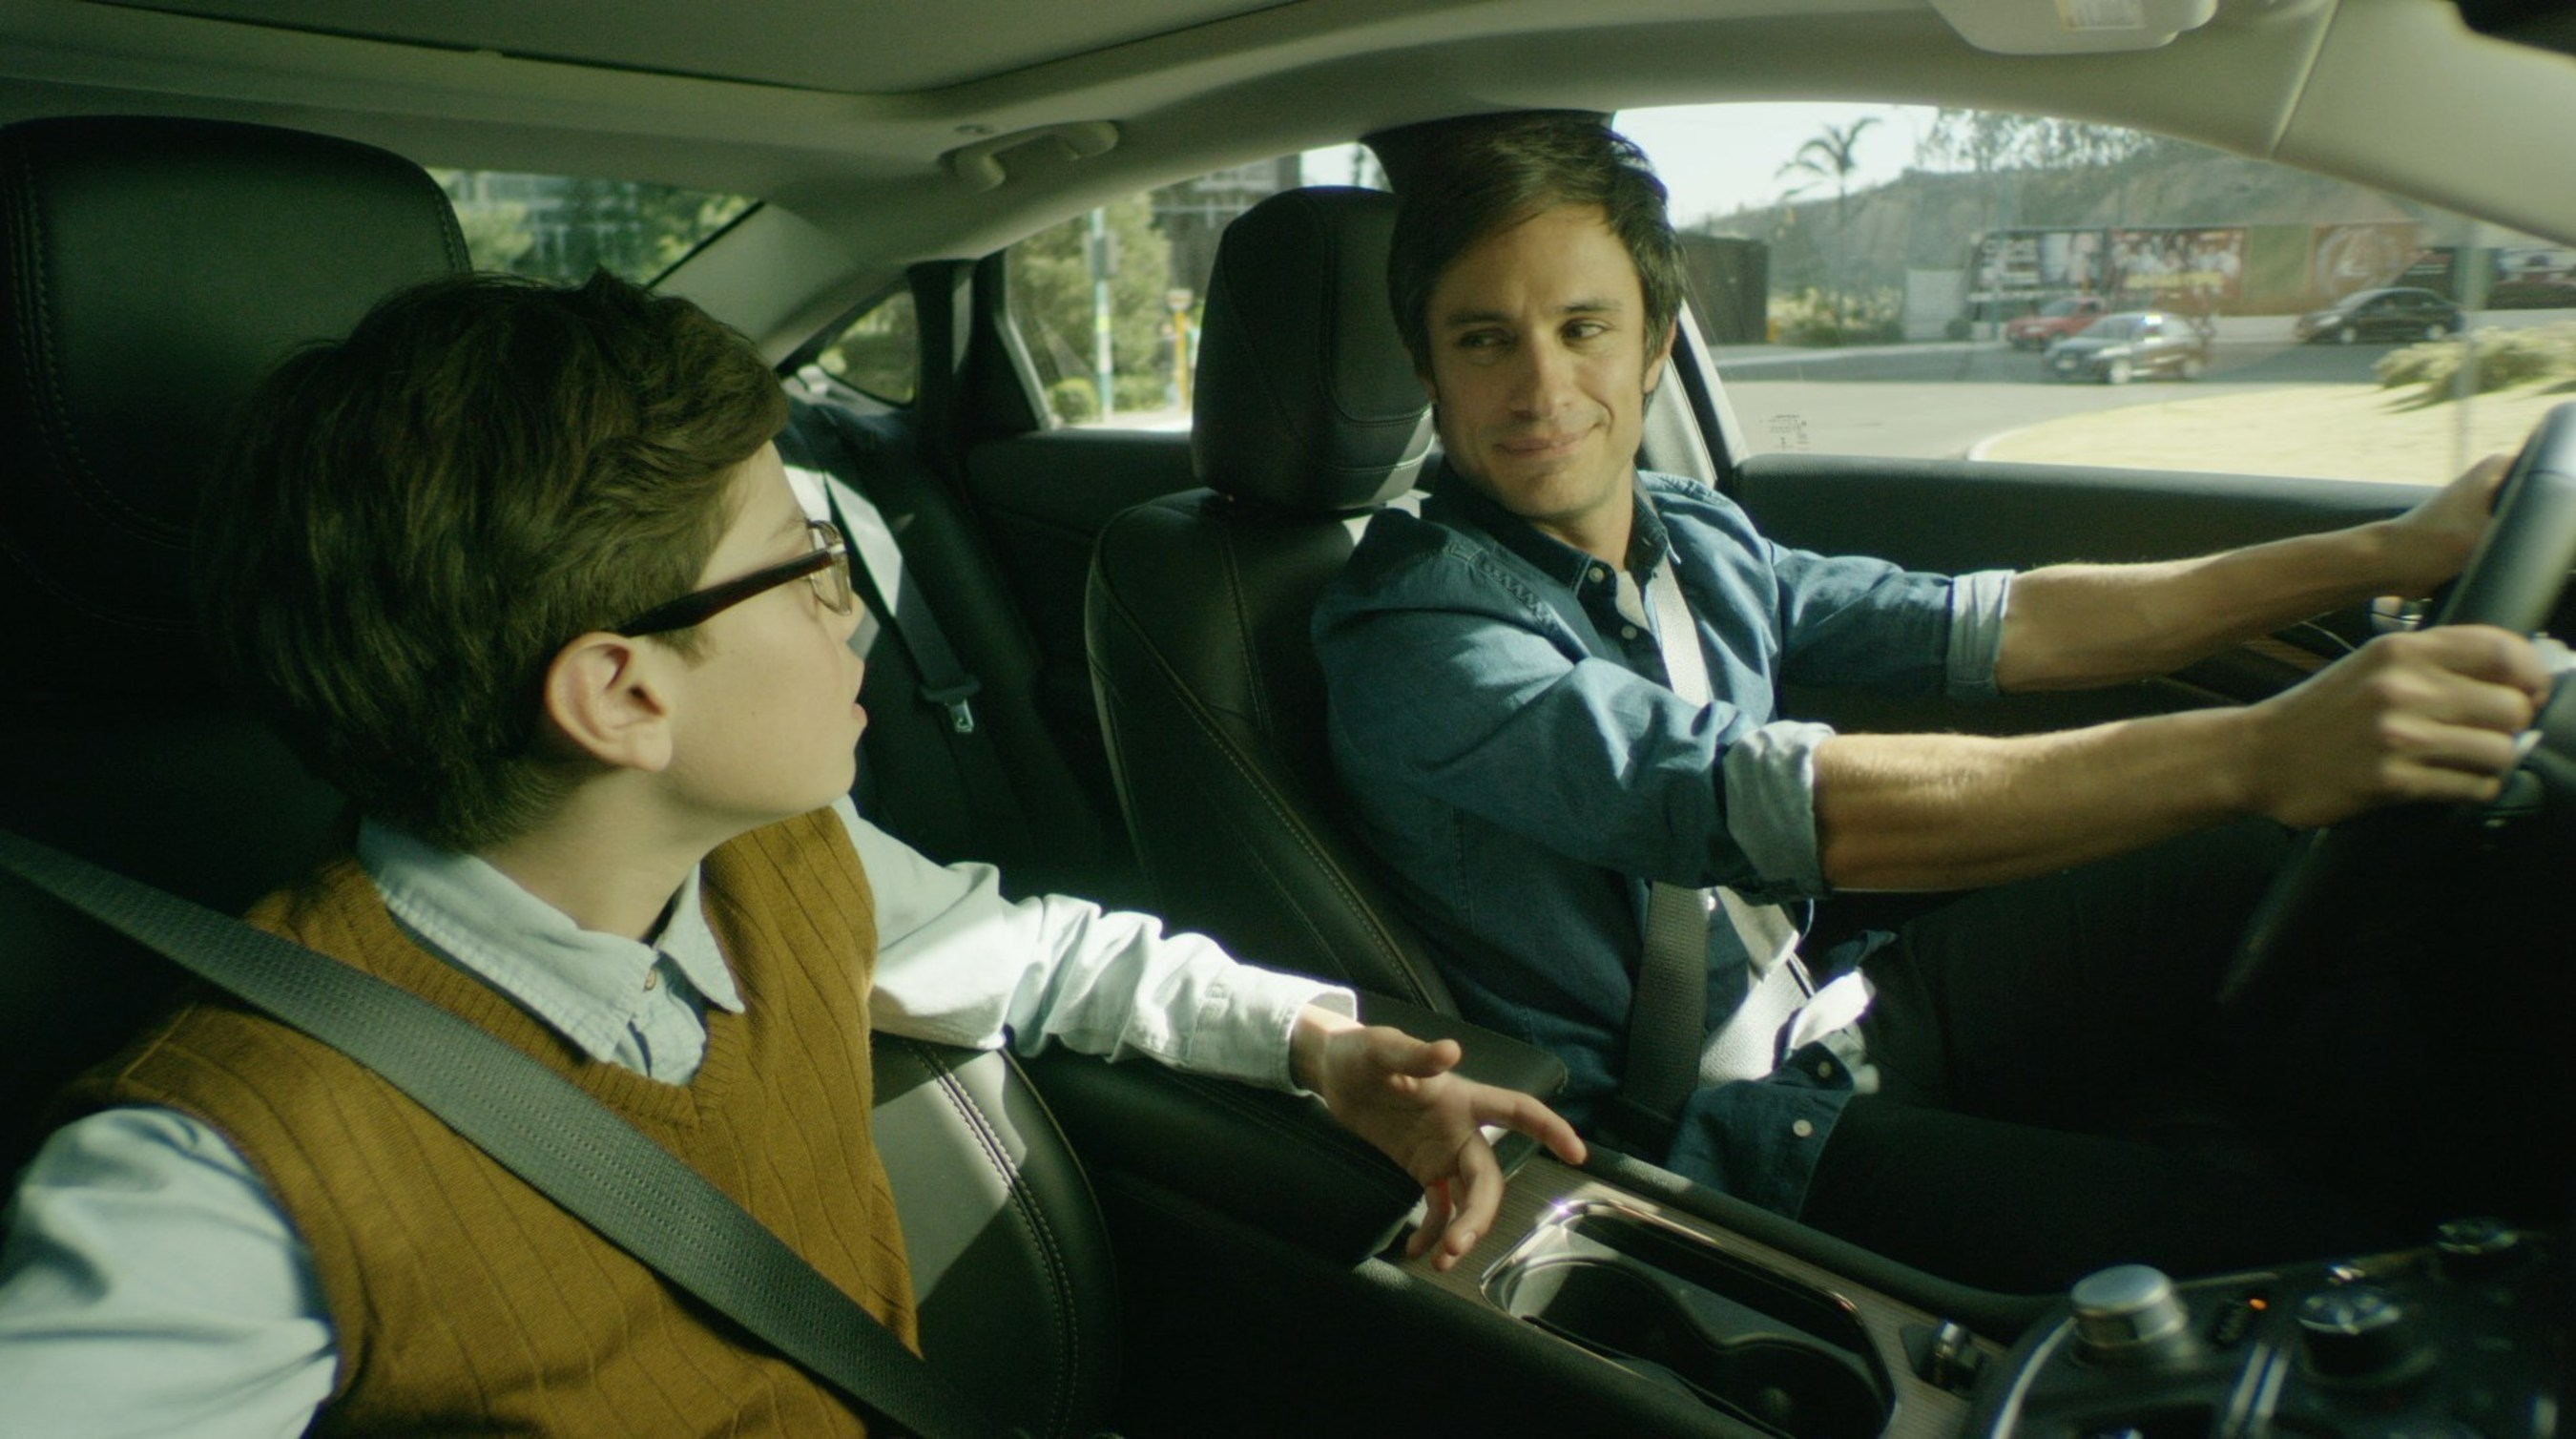 New multicultural marketing campaign for all-new 2015 Chrysler 200 features actor Gael Garcia Bernal.